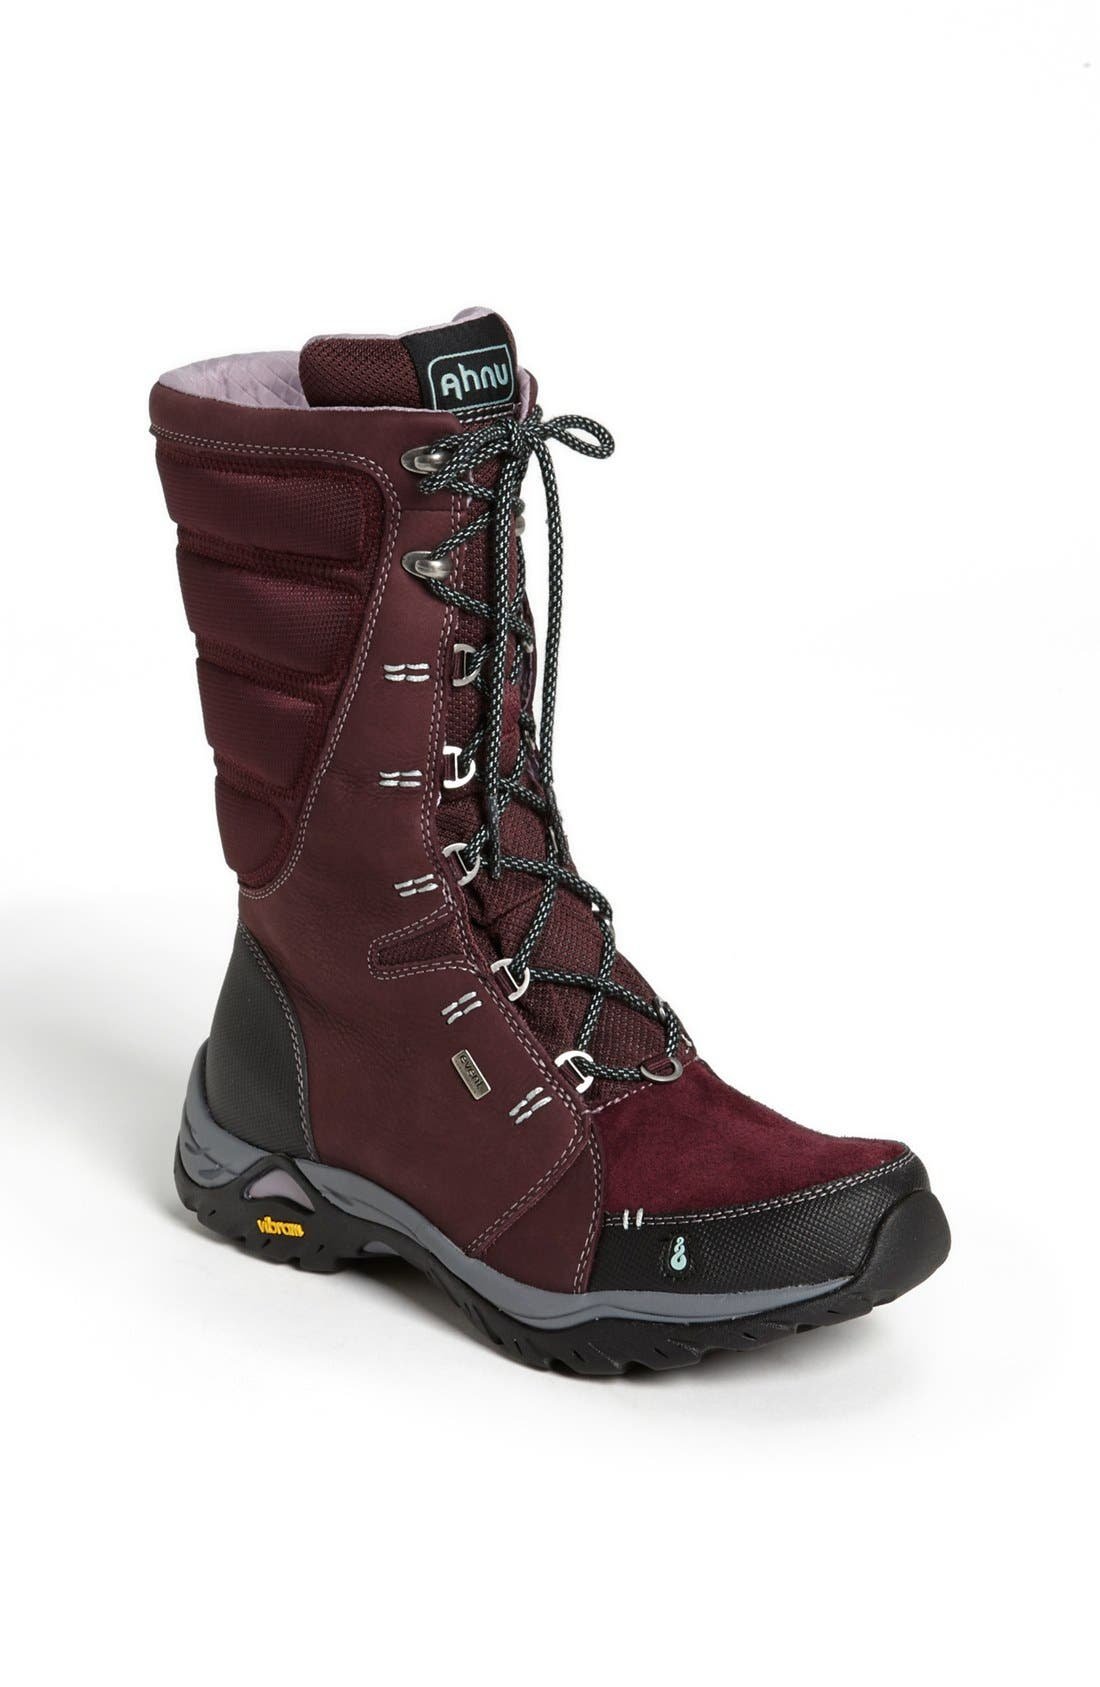 Alternate Image 1 Selected - Ahnu 'Northridge' Boot